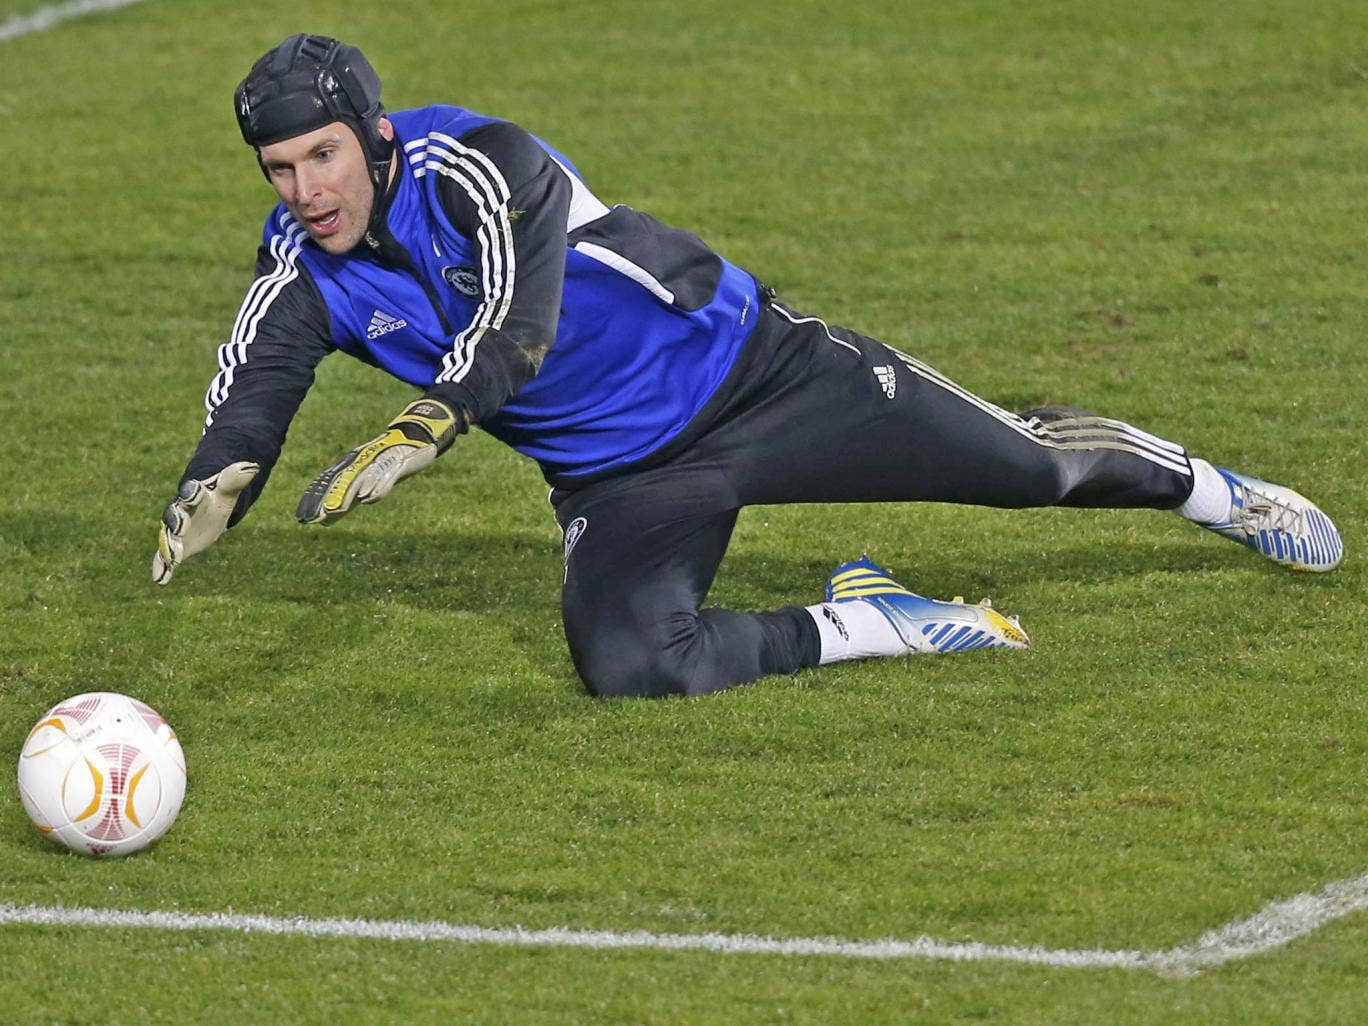 Petr Cech will face former club Sparta Prague for the first time